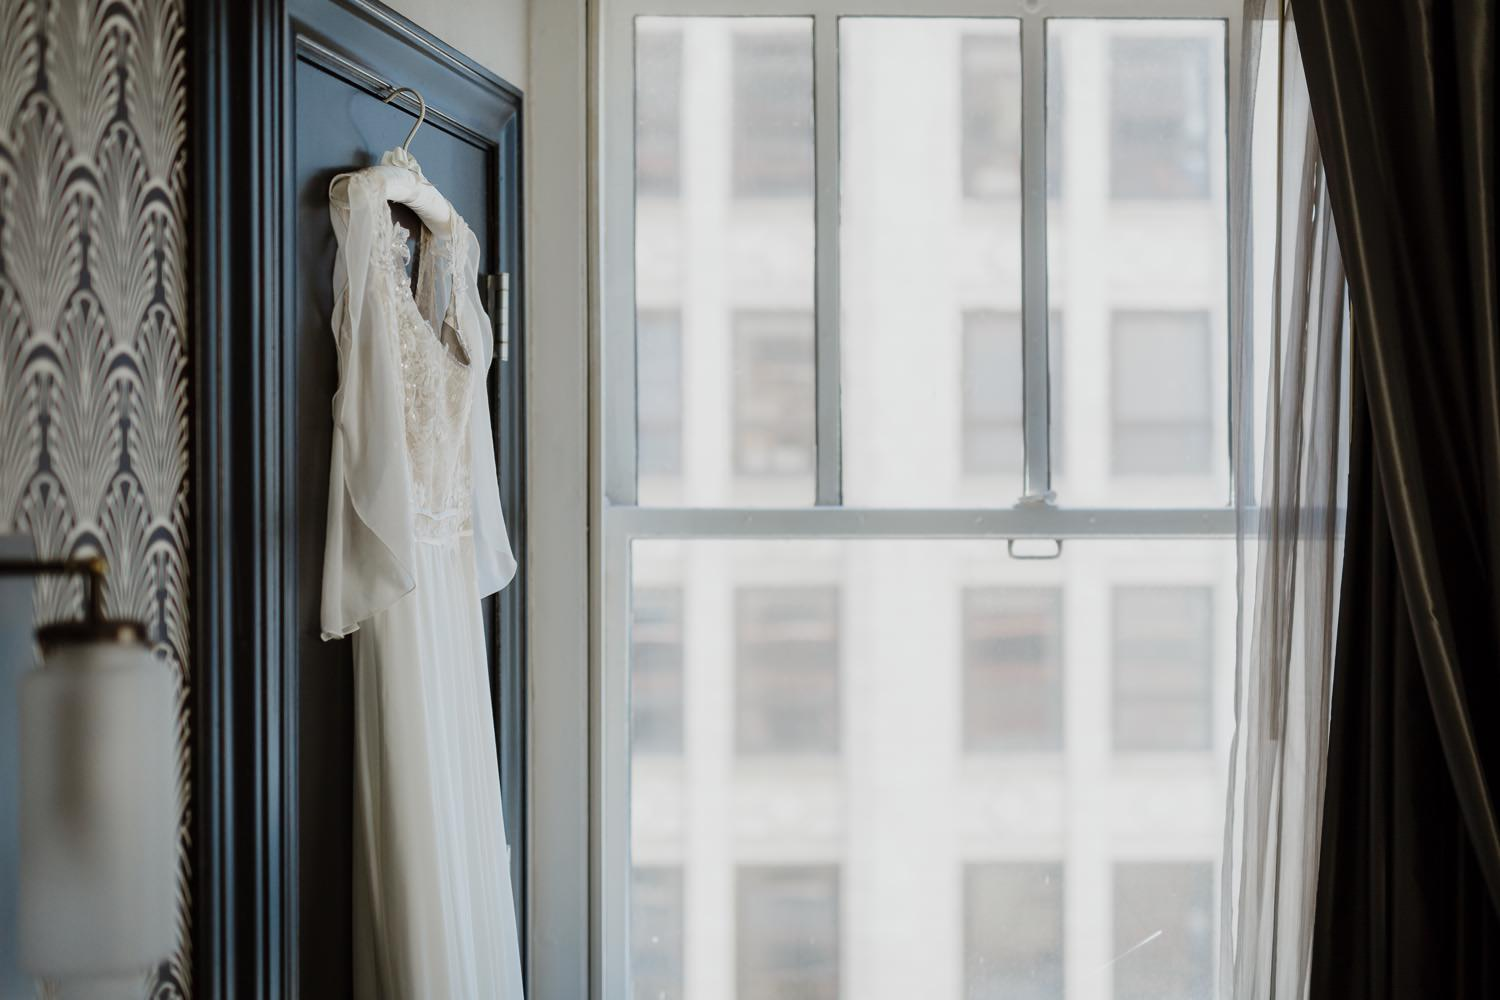 Picture of the wedding dress hanging inside the room of Allegro Hotel in Chicago